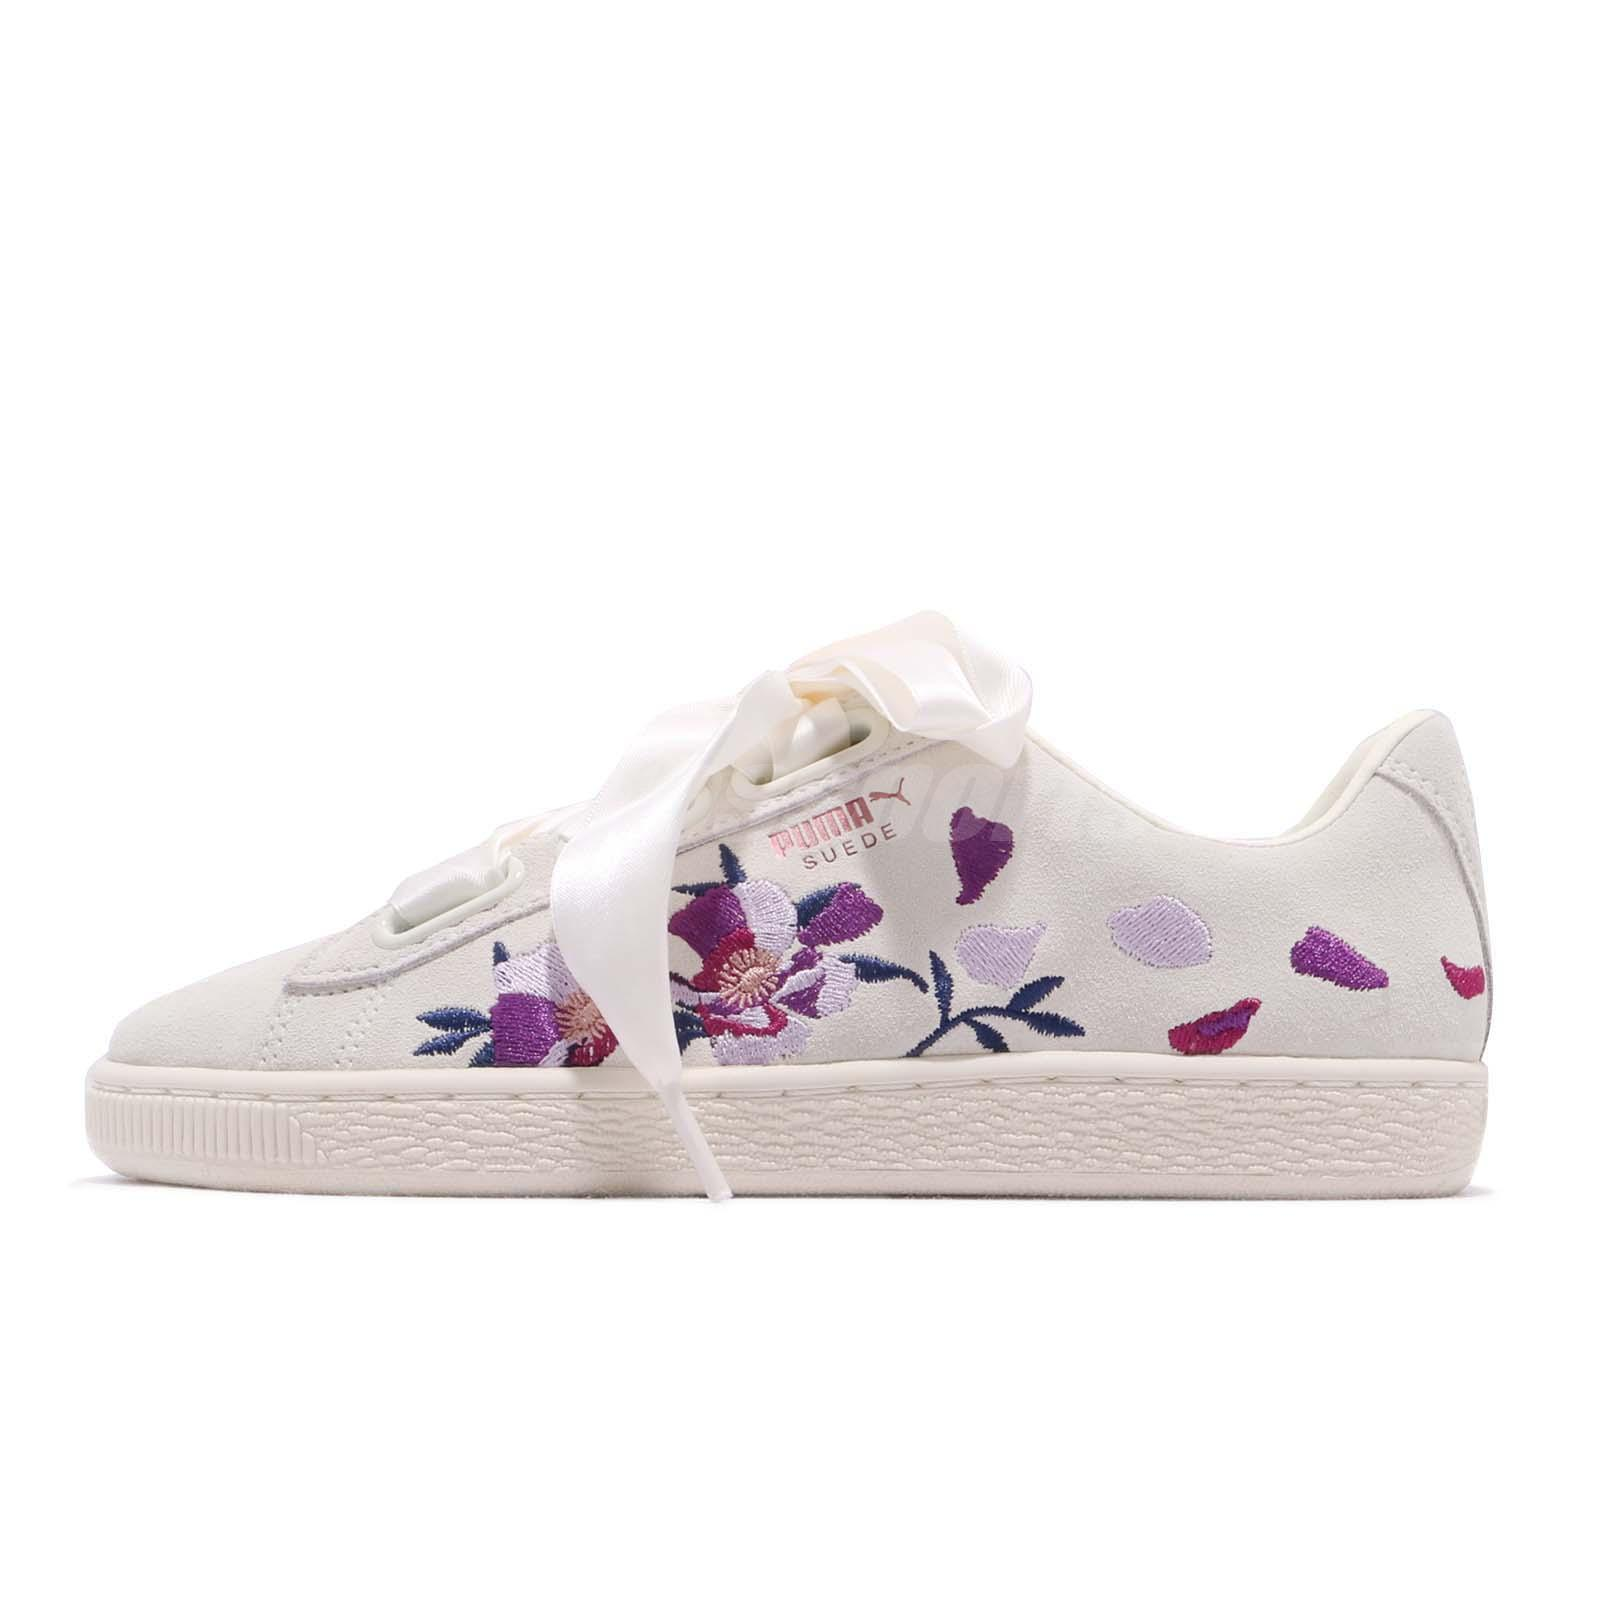 Puma Suede Heart Flowery Wns Whisper White Rose Gold Women Casual Shoe  367811-02 75bc2b46d